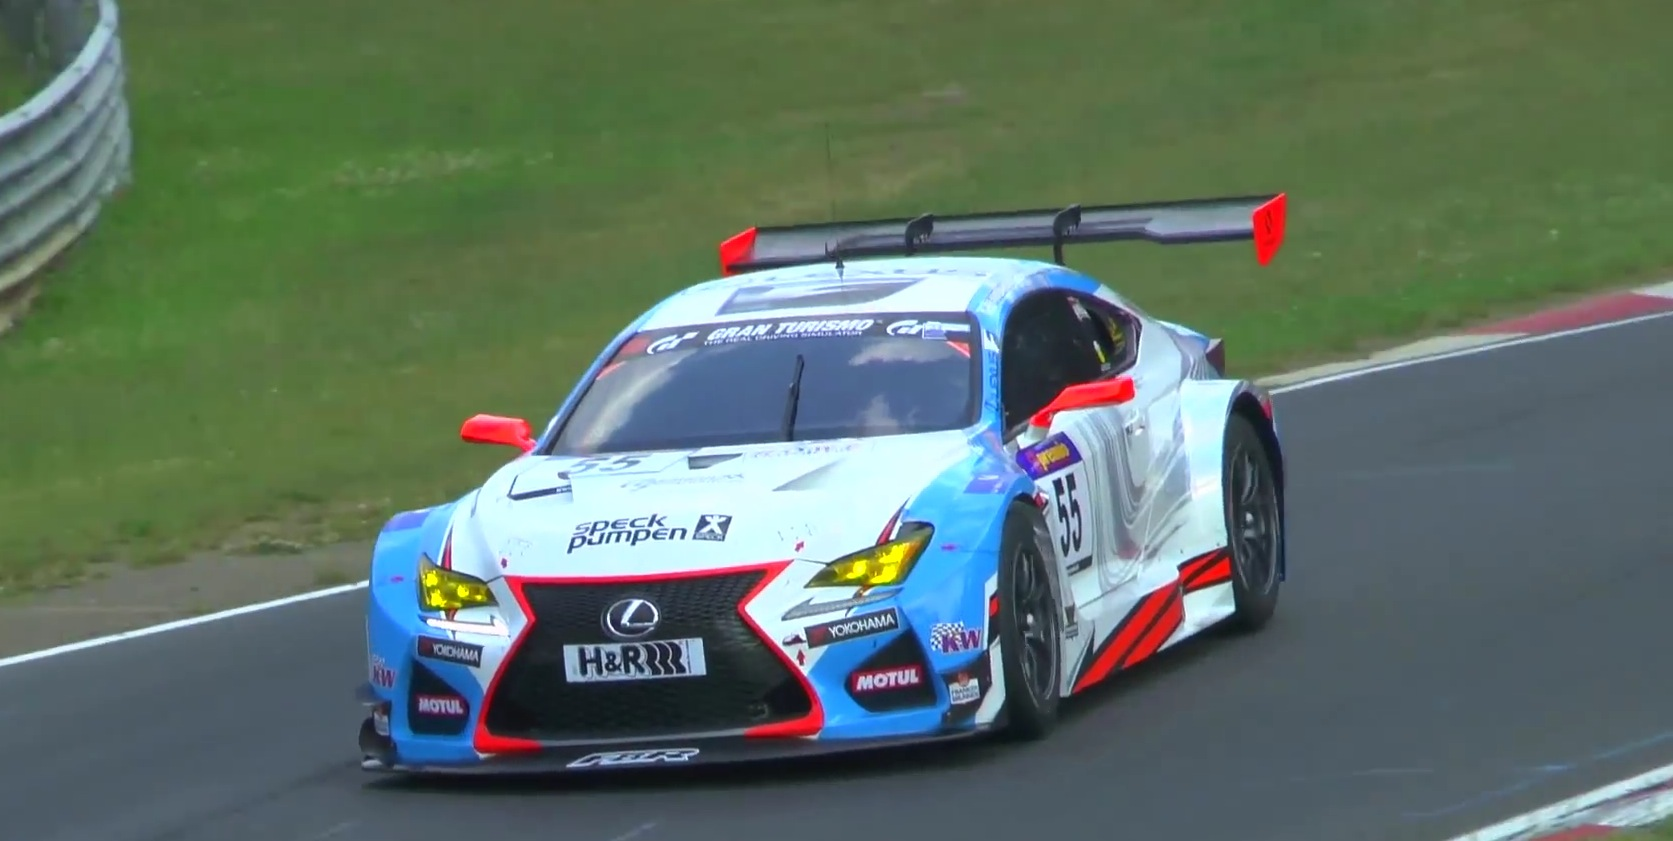 lexus rc f gt3 makes nurburgring debut in vln race sounds amazing